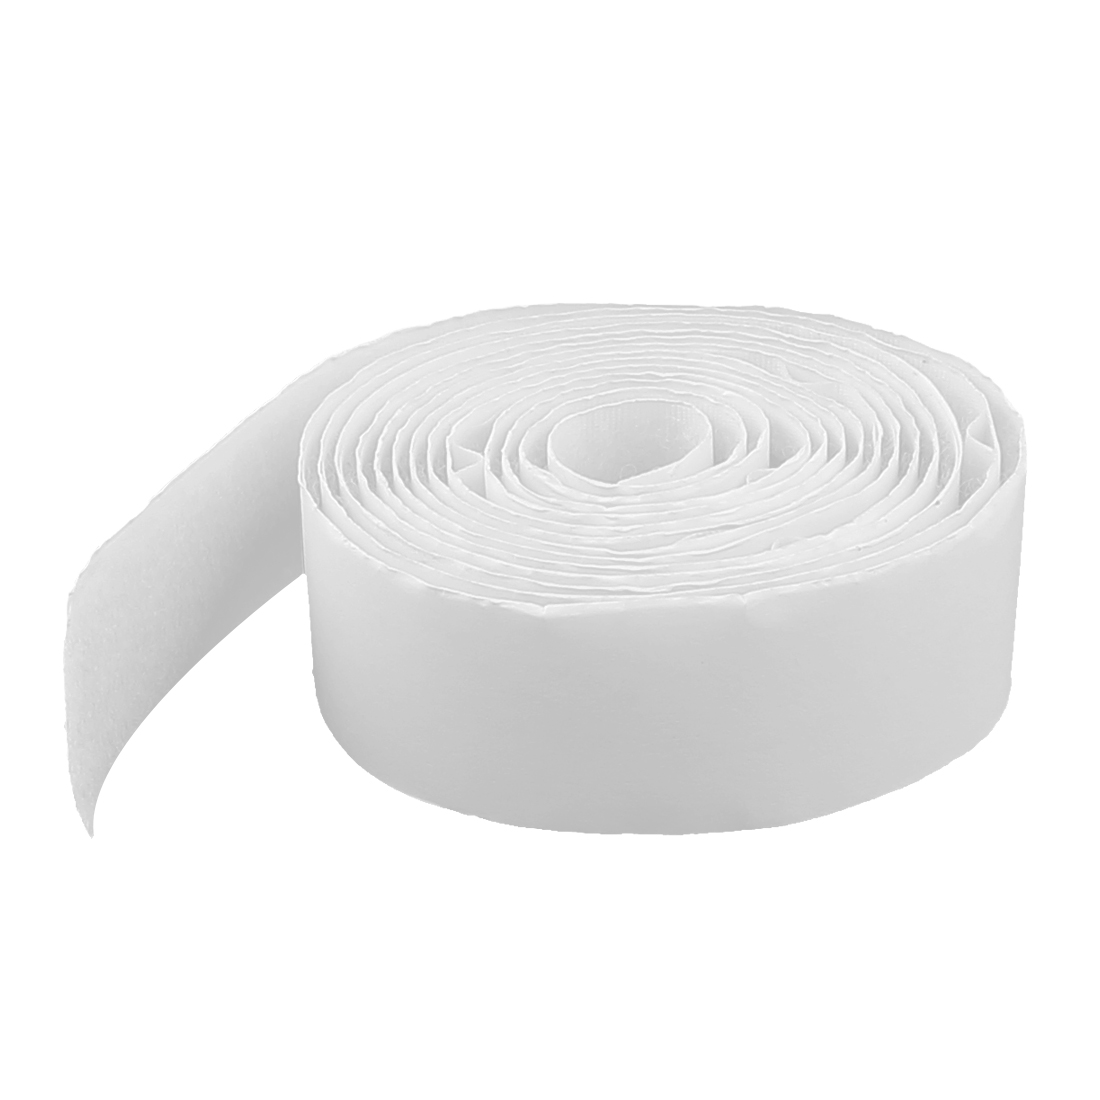 Self Adhesive 25mm Width Back Hook Loop Tape Fastener White 2M Long